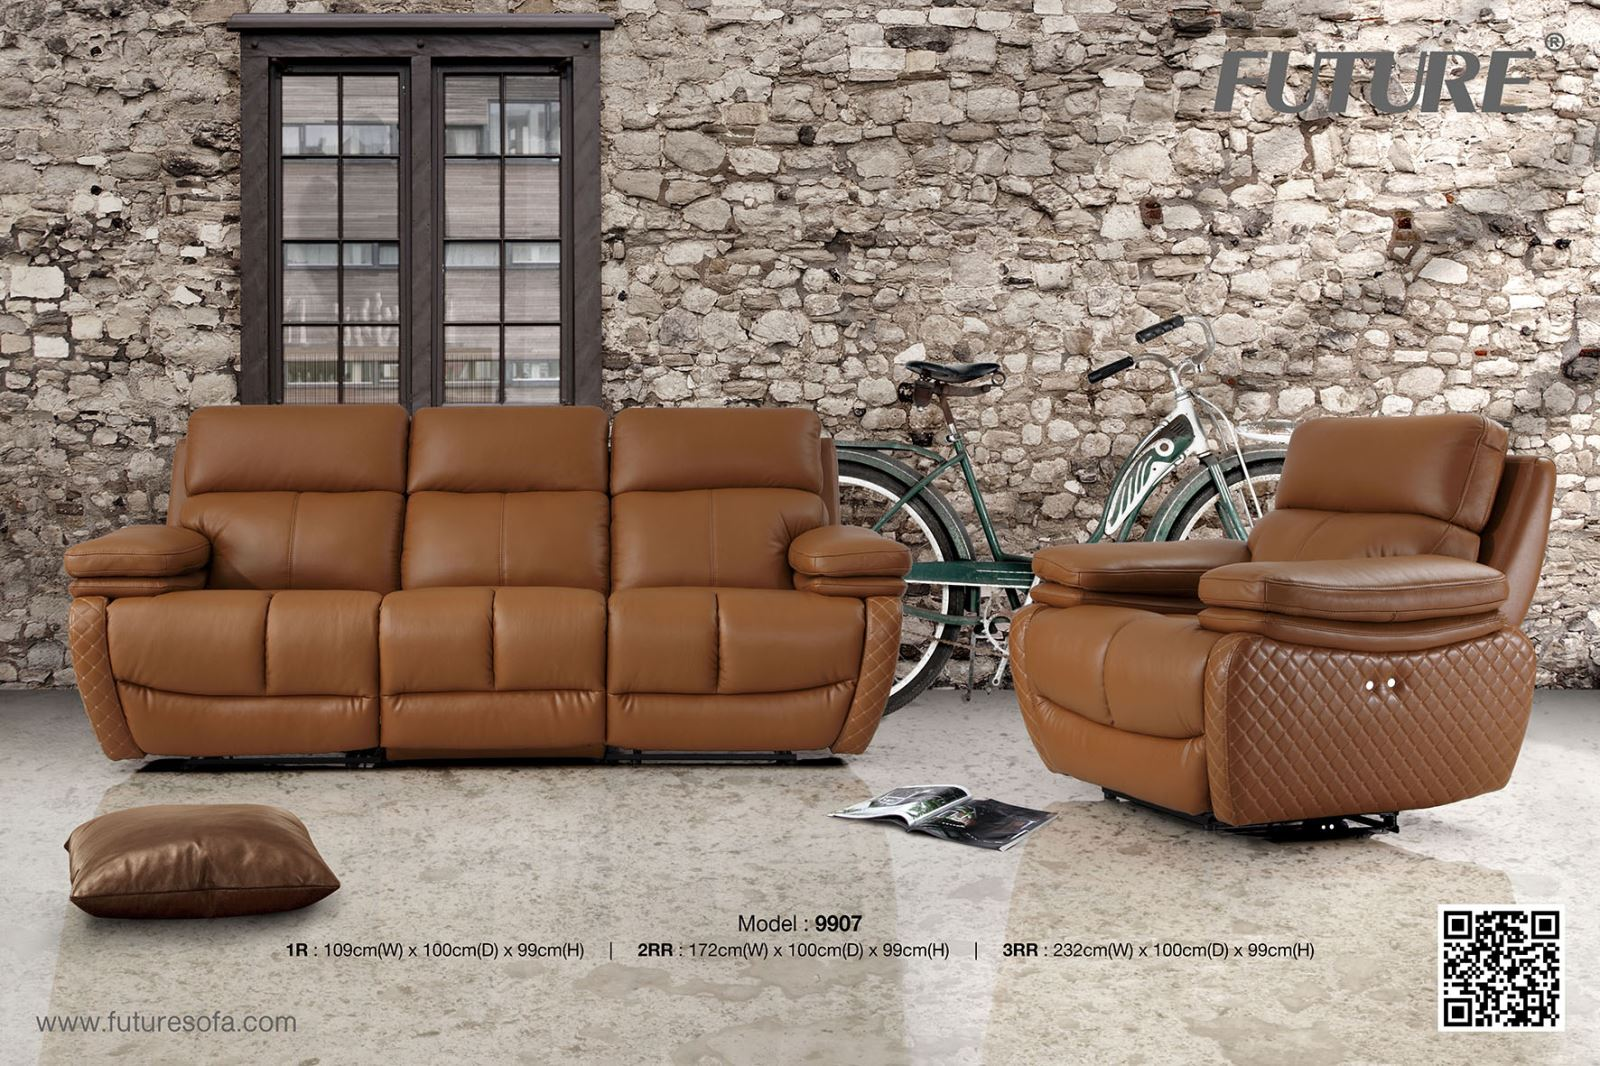 SOFA BĂNG DA BÒ - FUTURE MODEL 9907